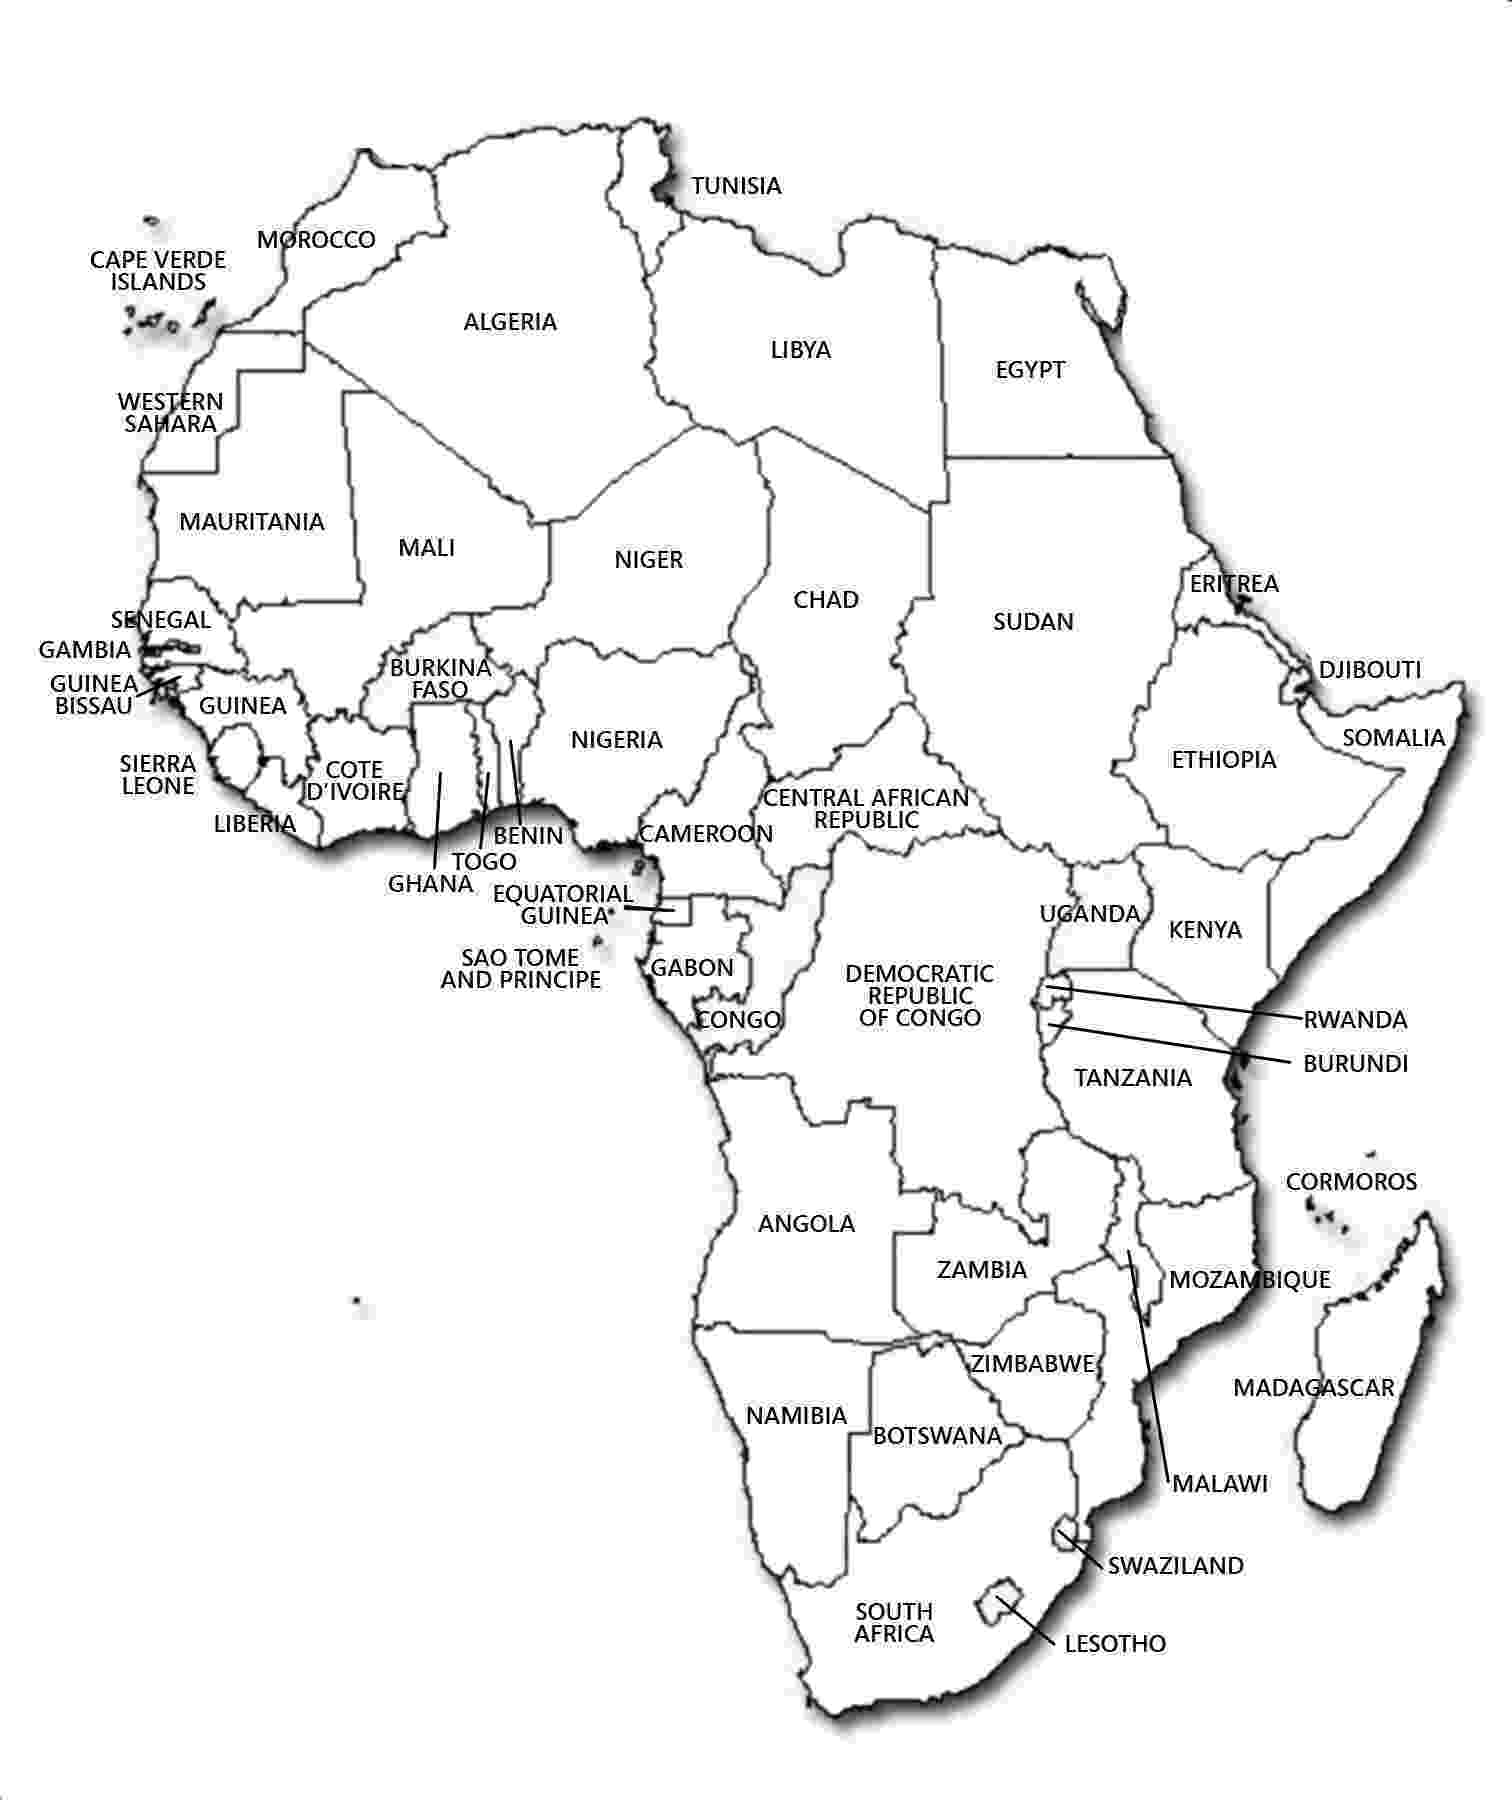 map of africa printable black and white pin by carrie amaro on homeschool ideas africa map africa printable of and white map black